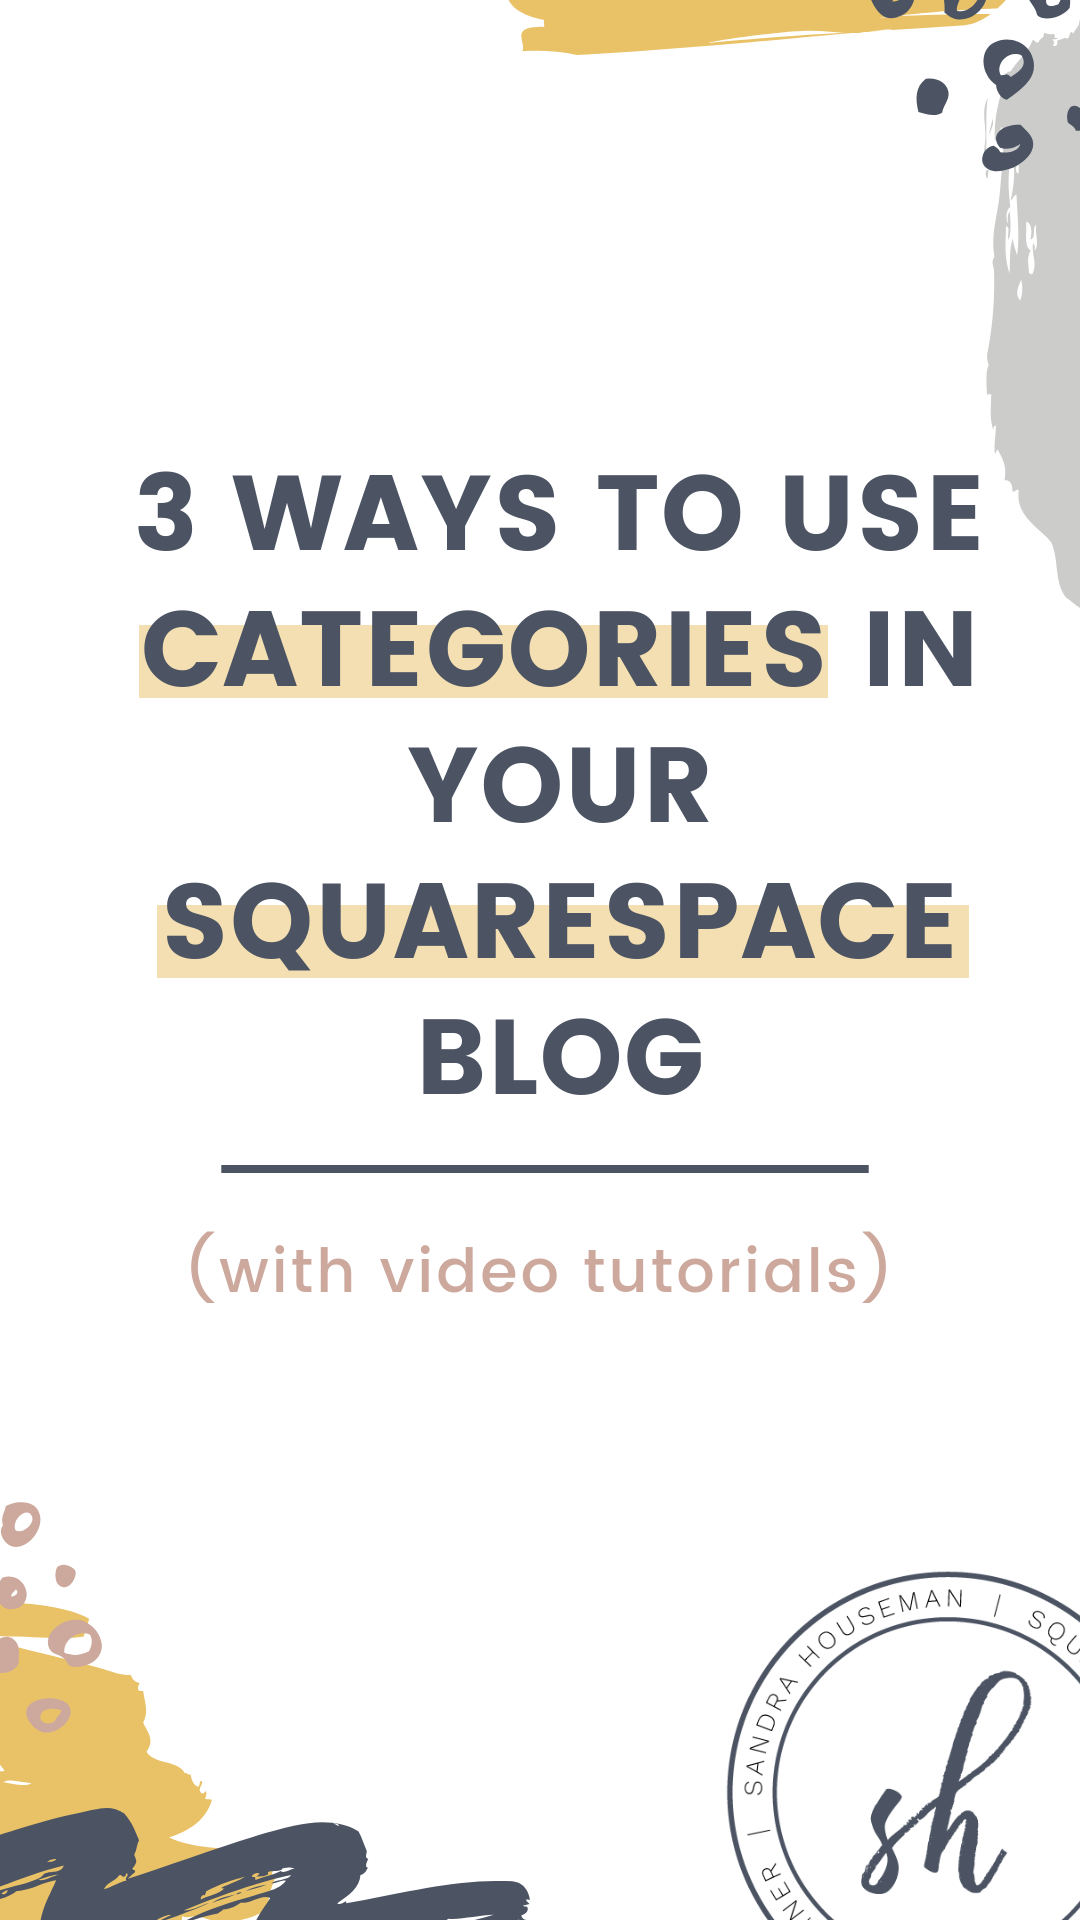 3 ways to use categories in your Squarespace blog Small